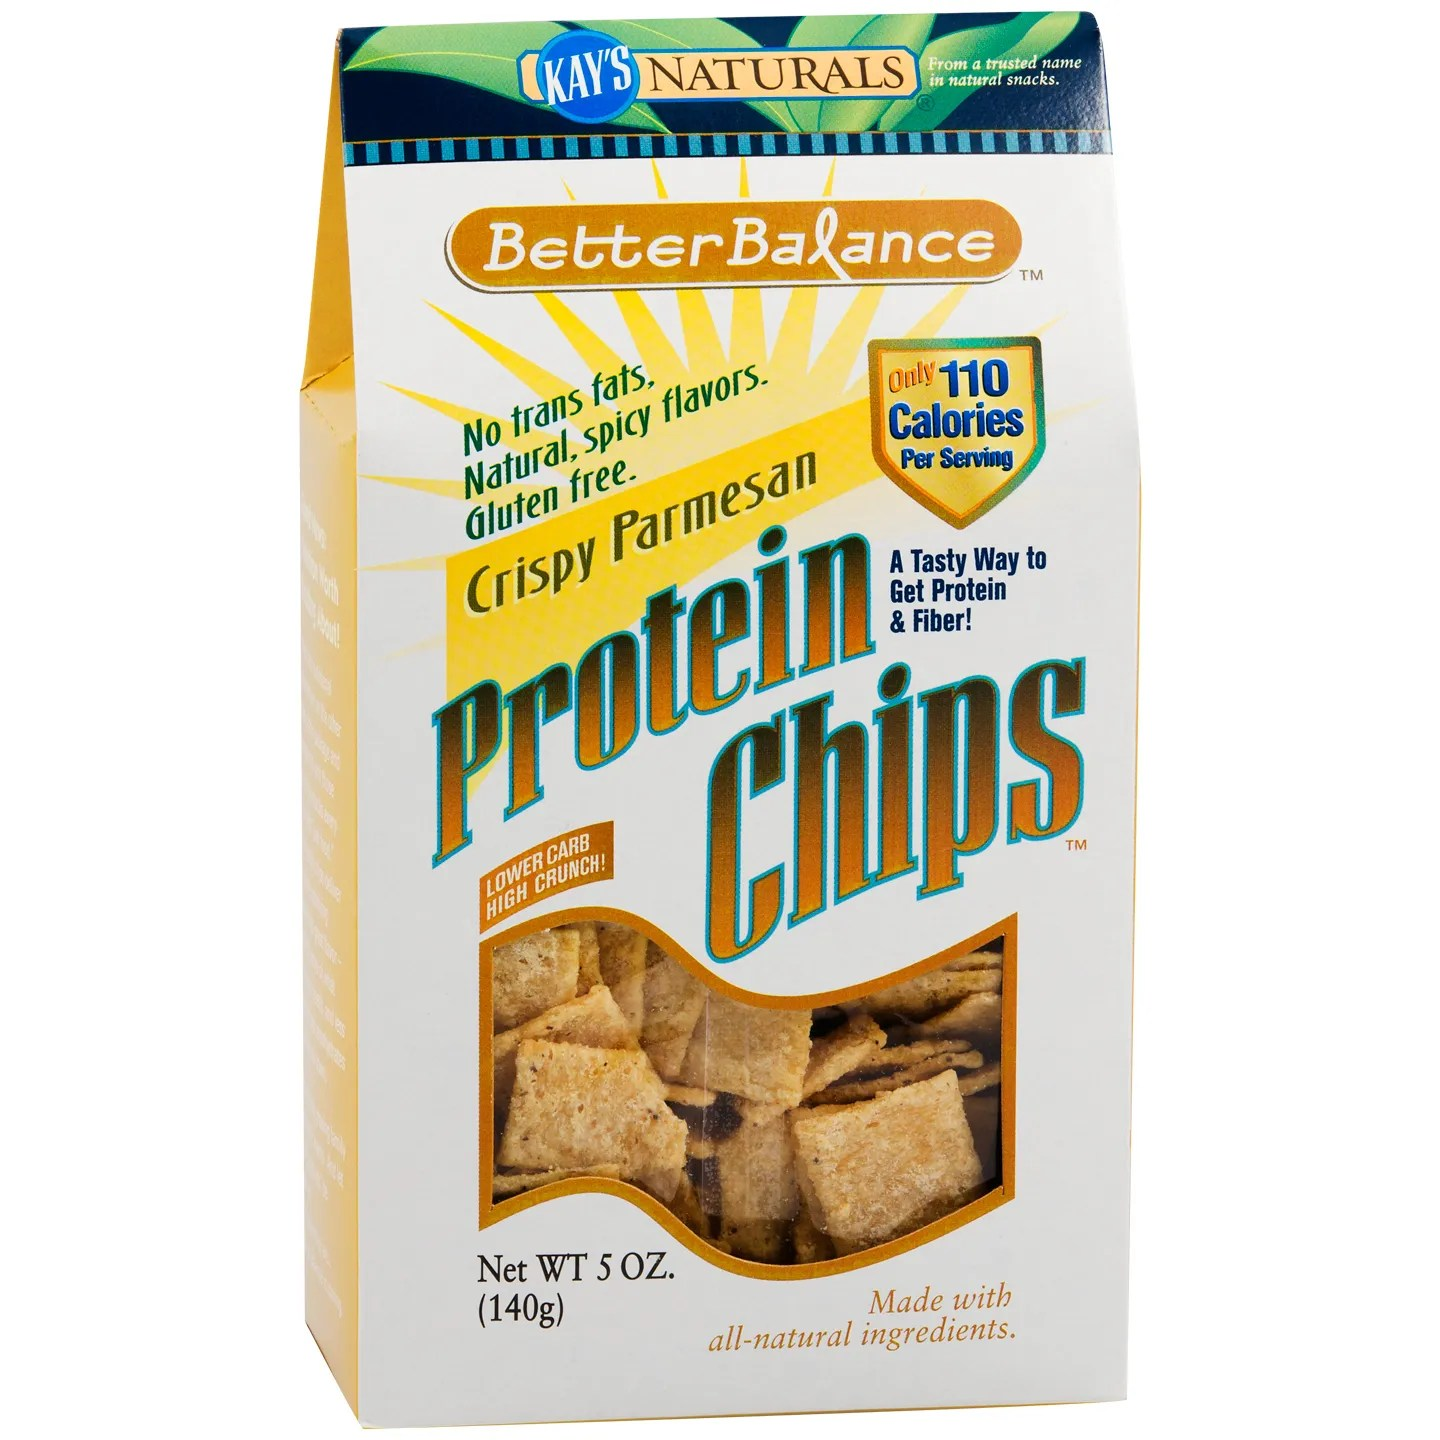 Protein Chips Kay's Naturals